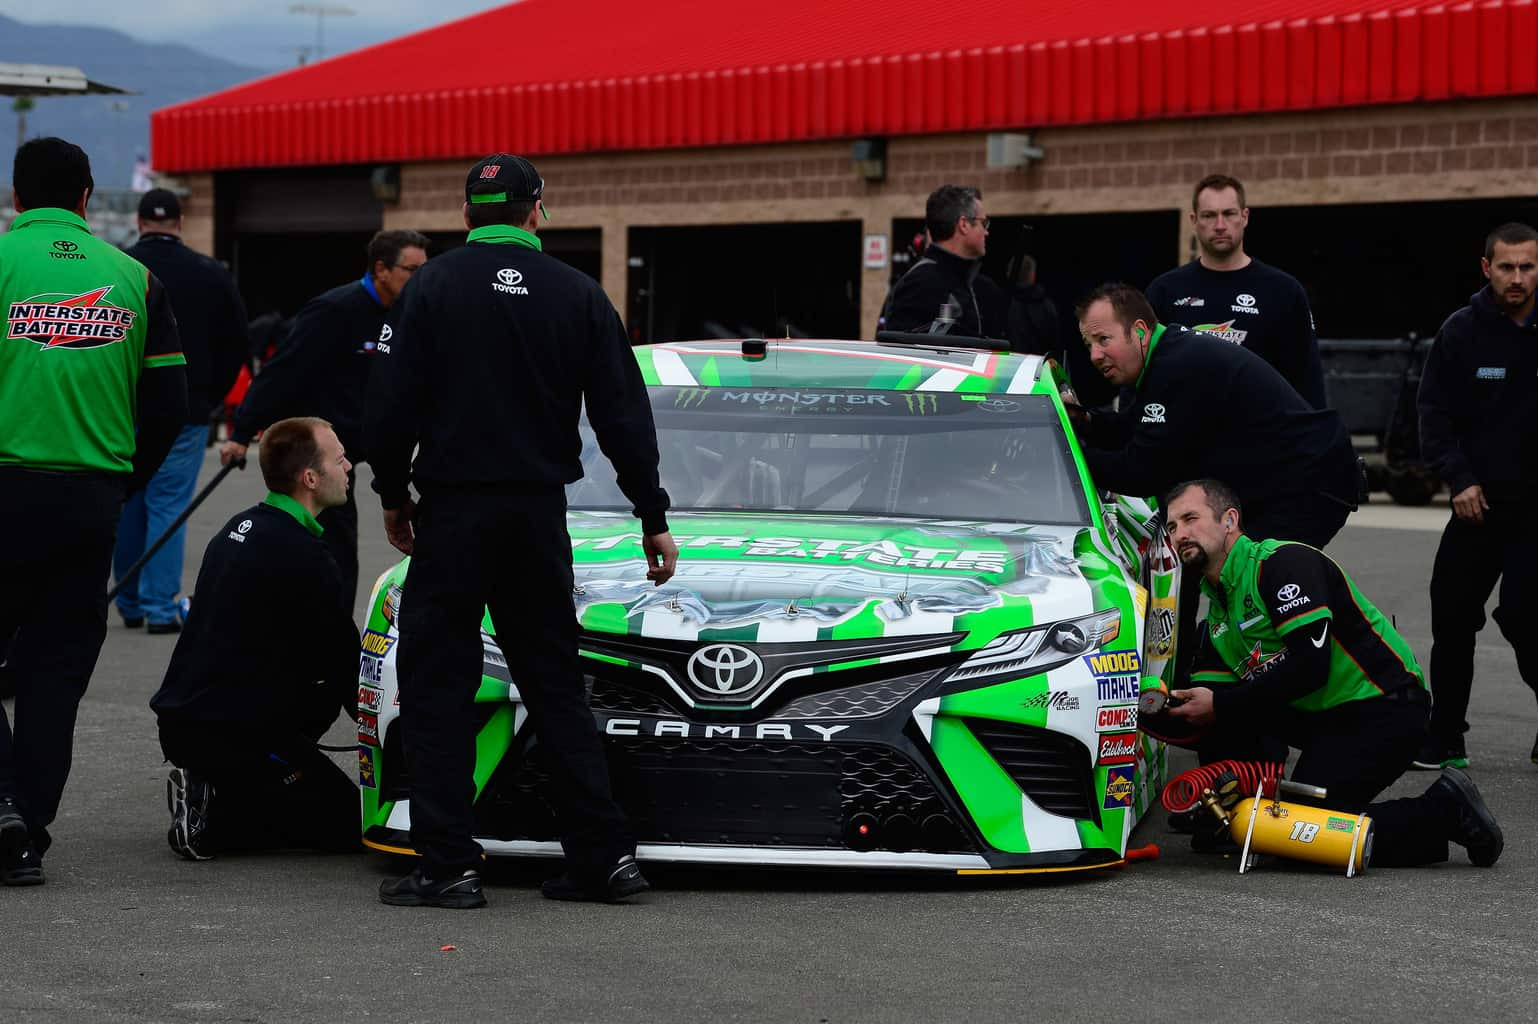 2018 Kyle Busch Crew MENCS Auto Club Speedway 2018 photo credit NASCAR via Getty Images